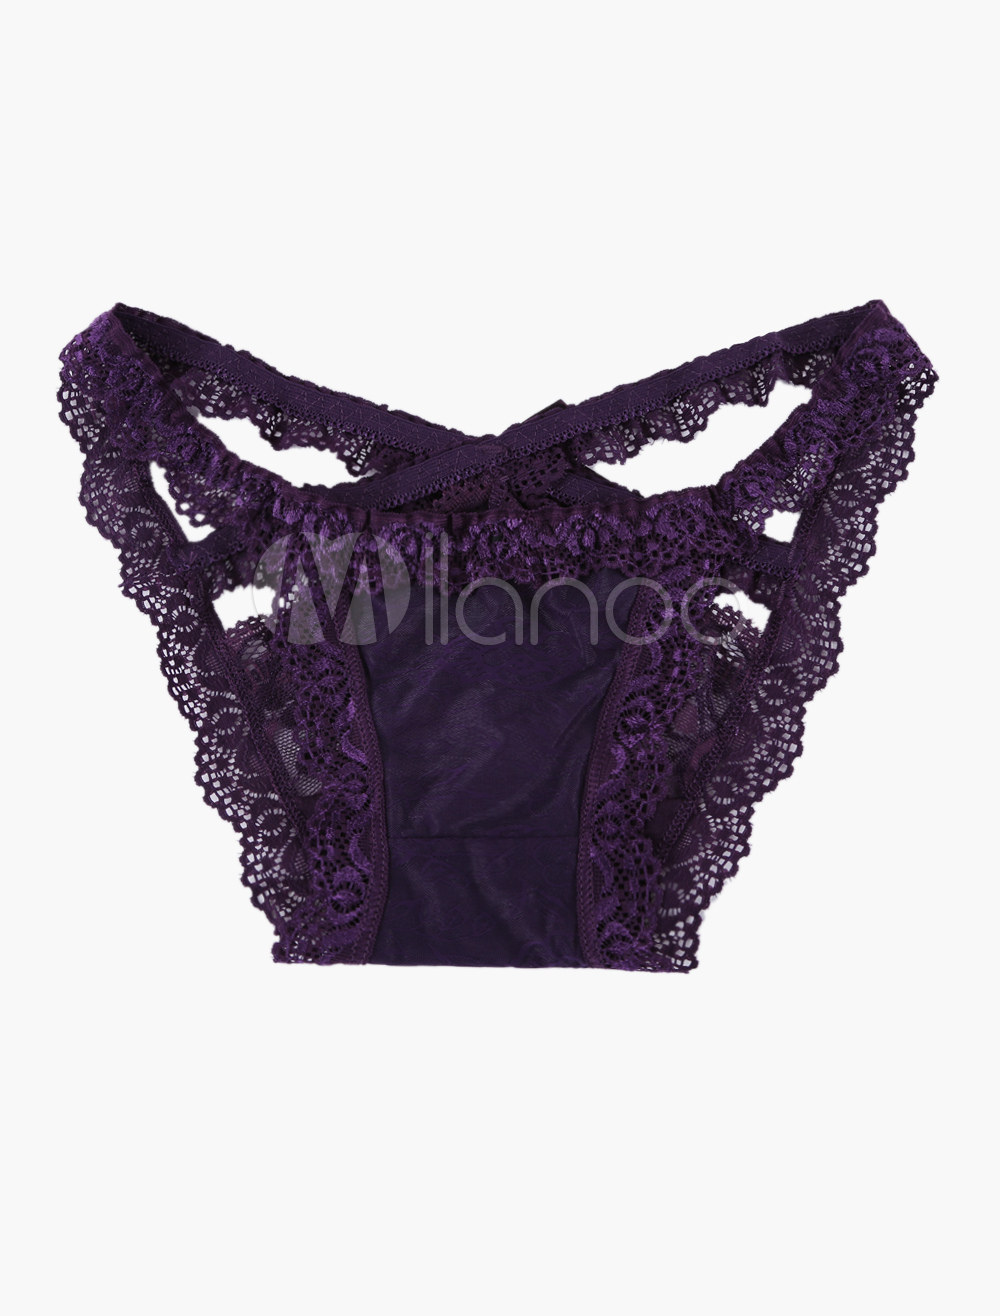 6829b4826 Sexy Lace Panties Purple Bow Underwear For Women - Milanoo.com